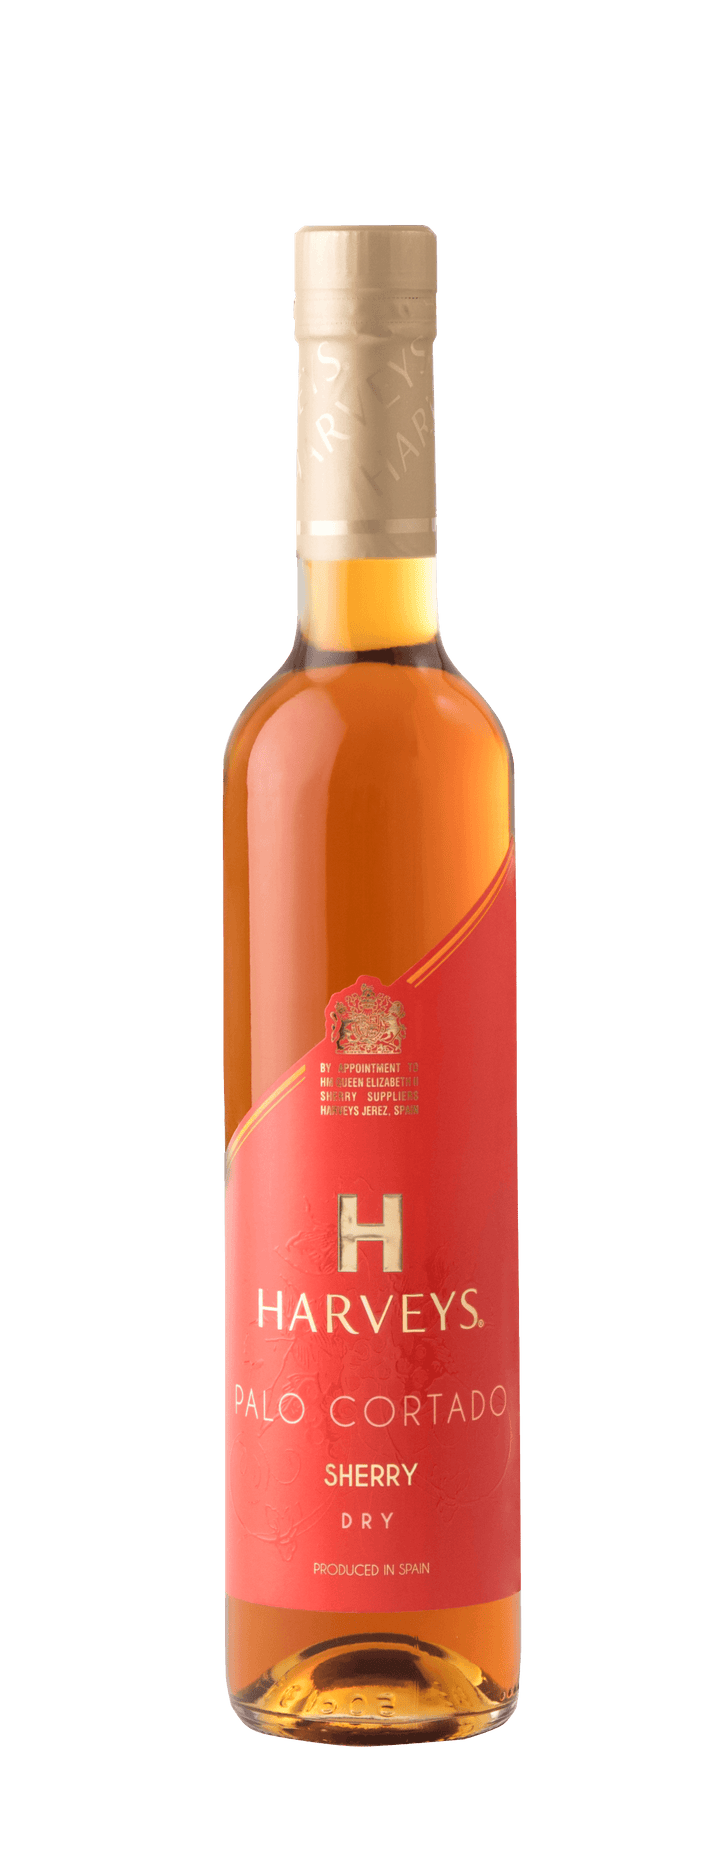 Vino Harveys Palo Cortado 500ml | bogar-wines.